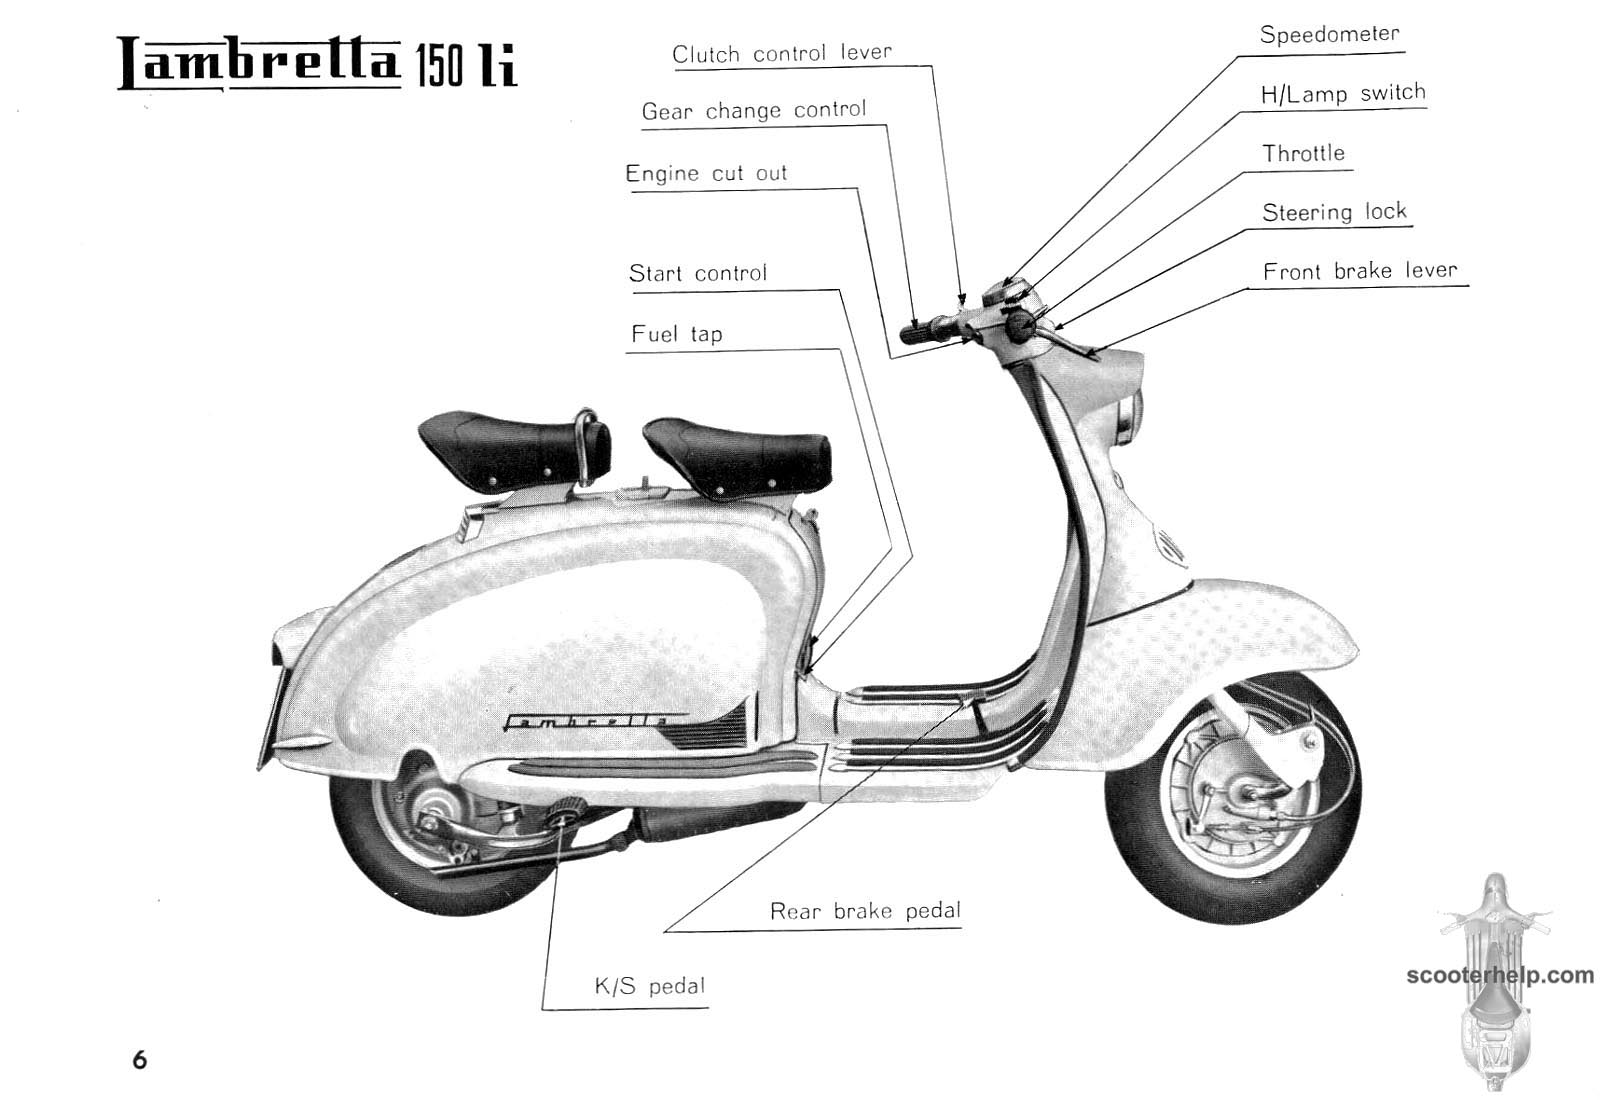 Li125 & 150 S1 Factory Repair Manual